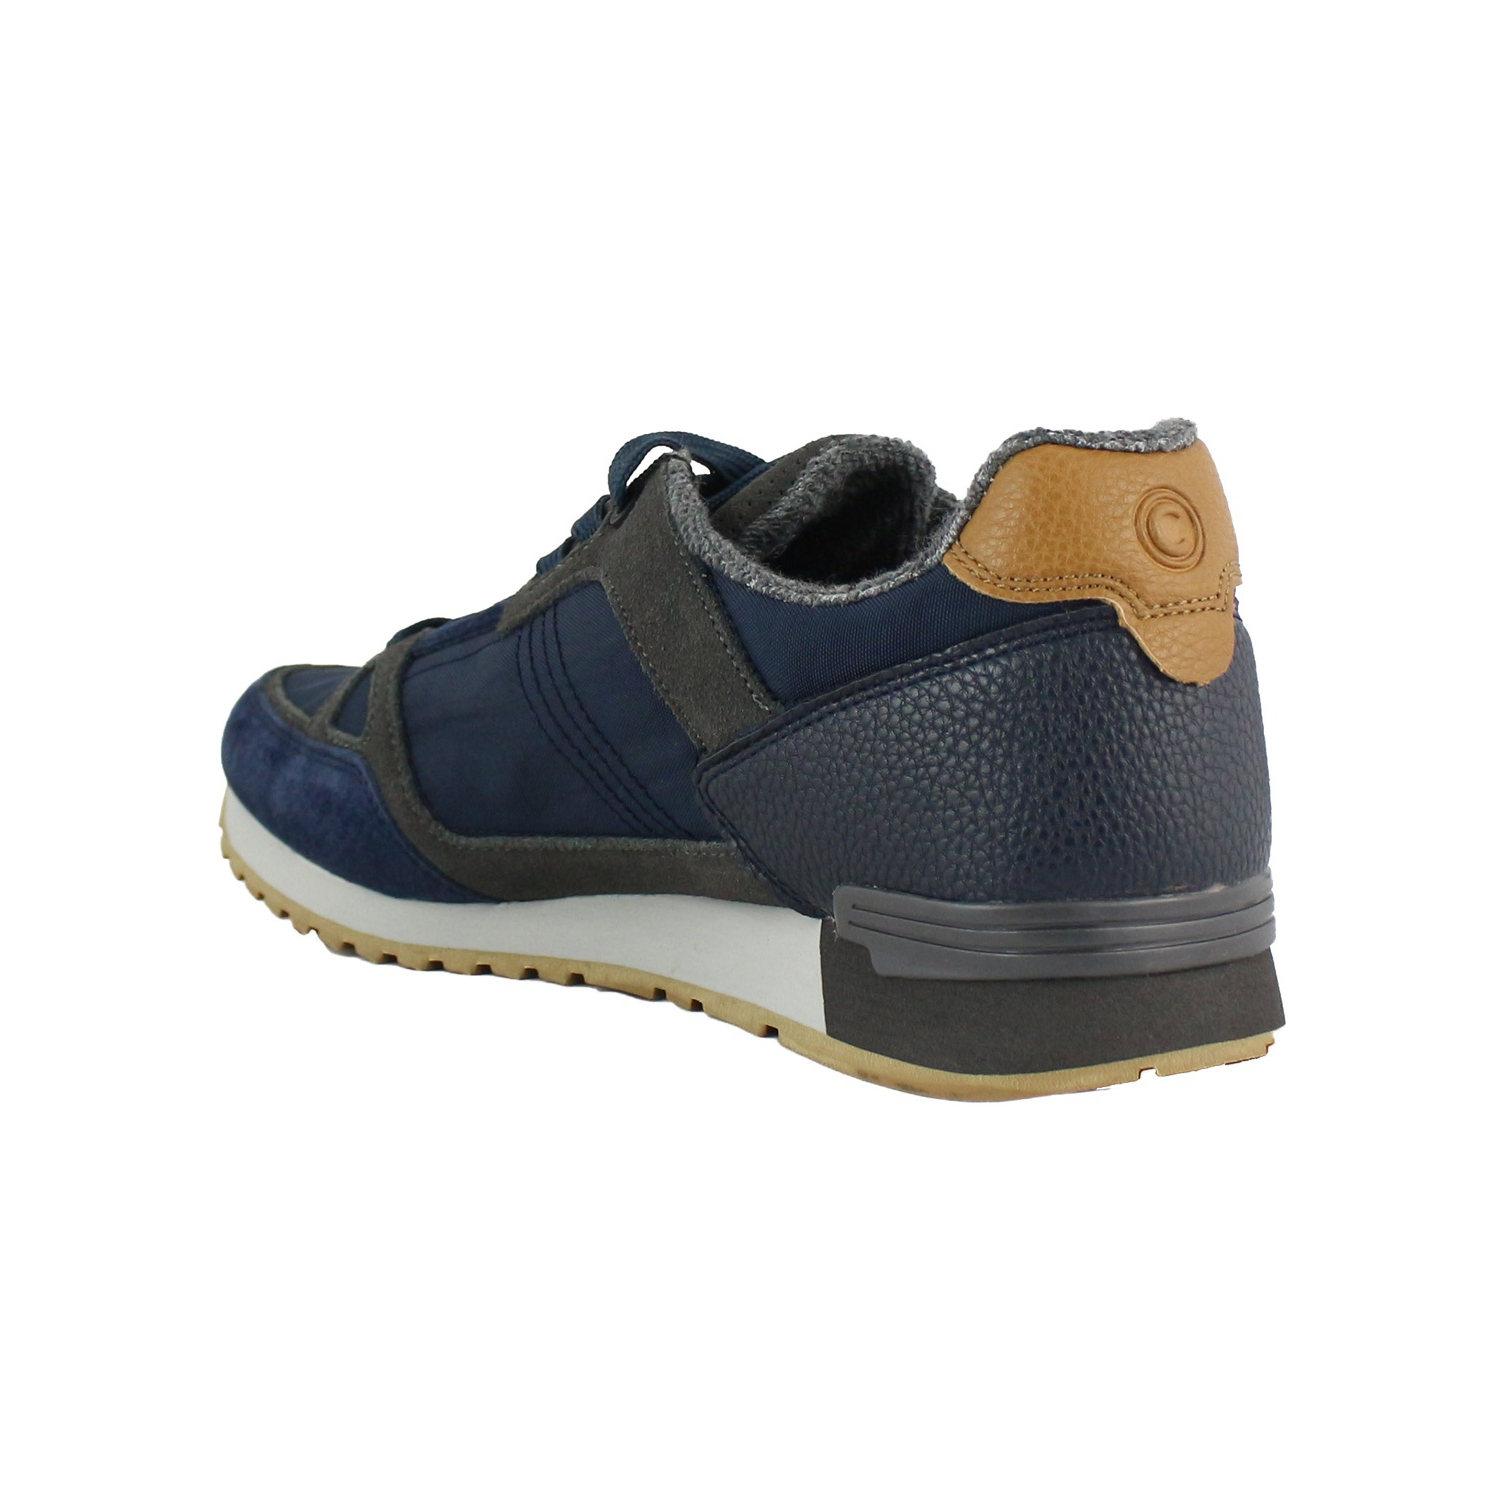 cheaper 72f0d dae16 ... Travis Supreme Colors Sneakers Navy   gray COLMAR SHOES